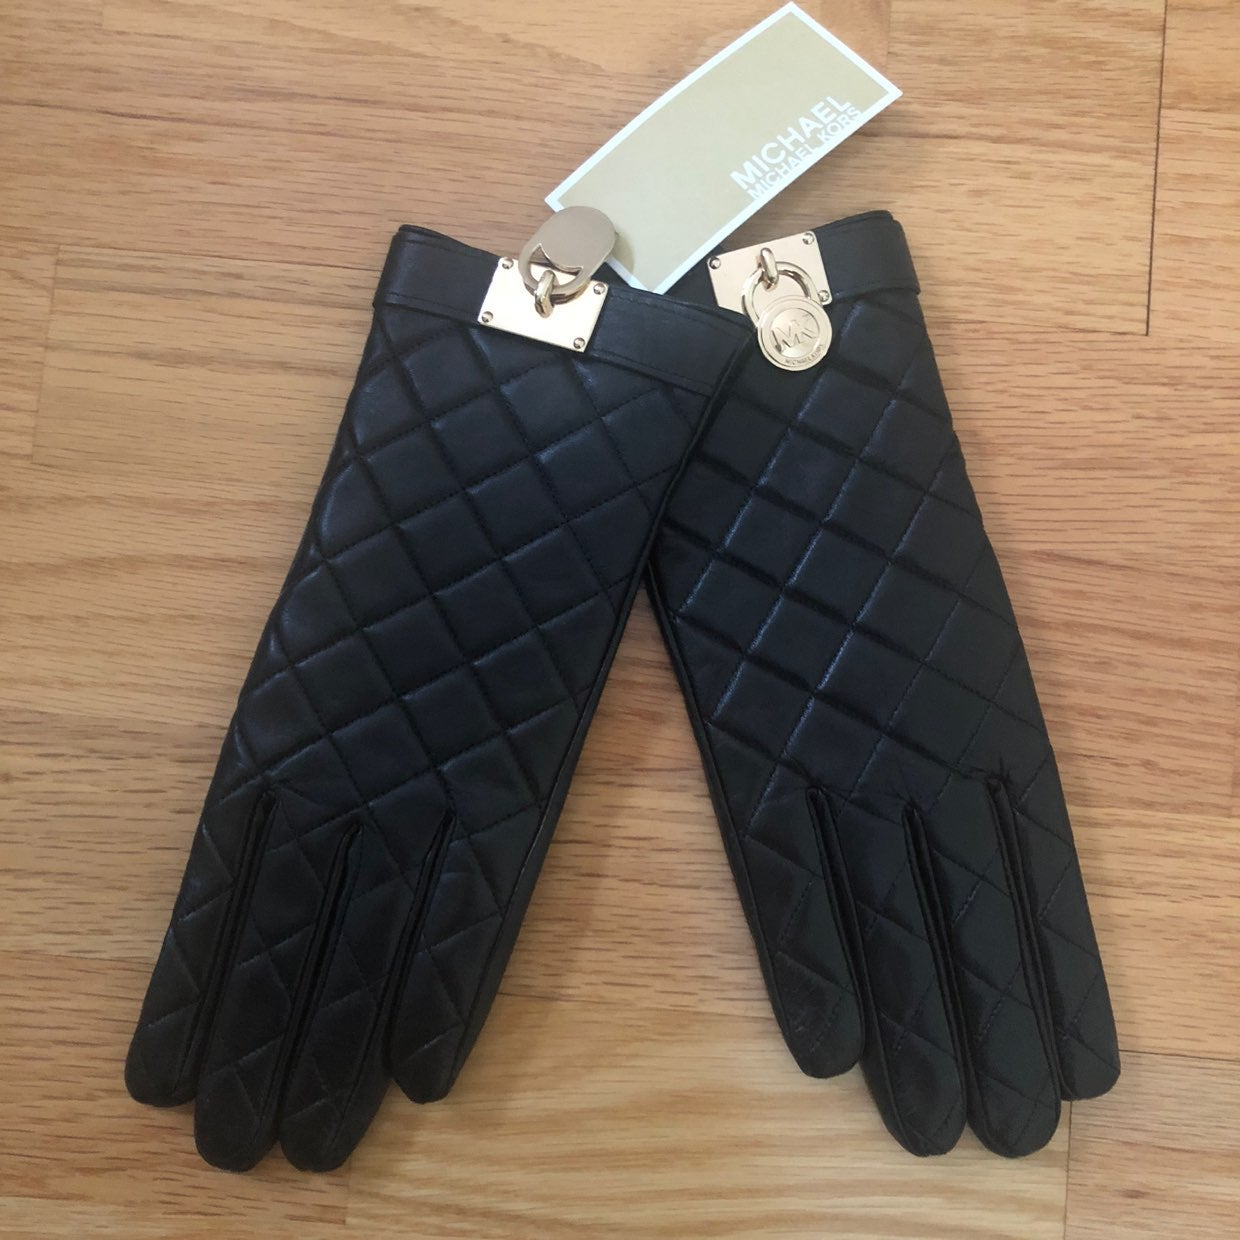 Michael Kors Women Black Leather Gloves